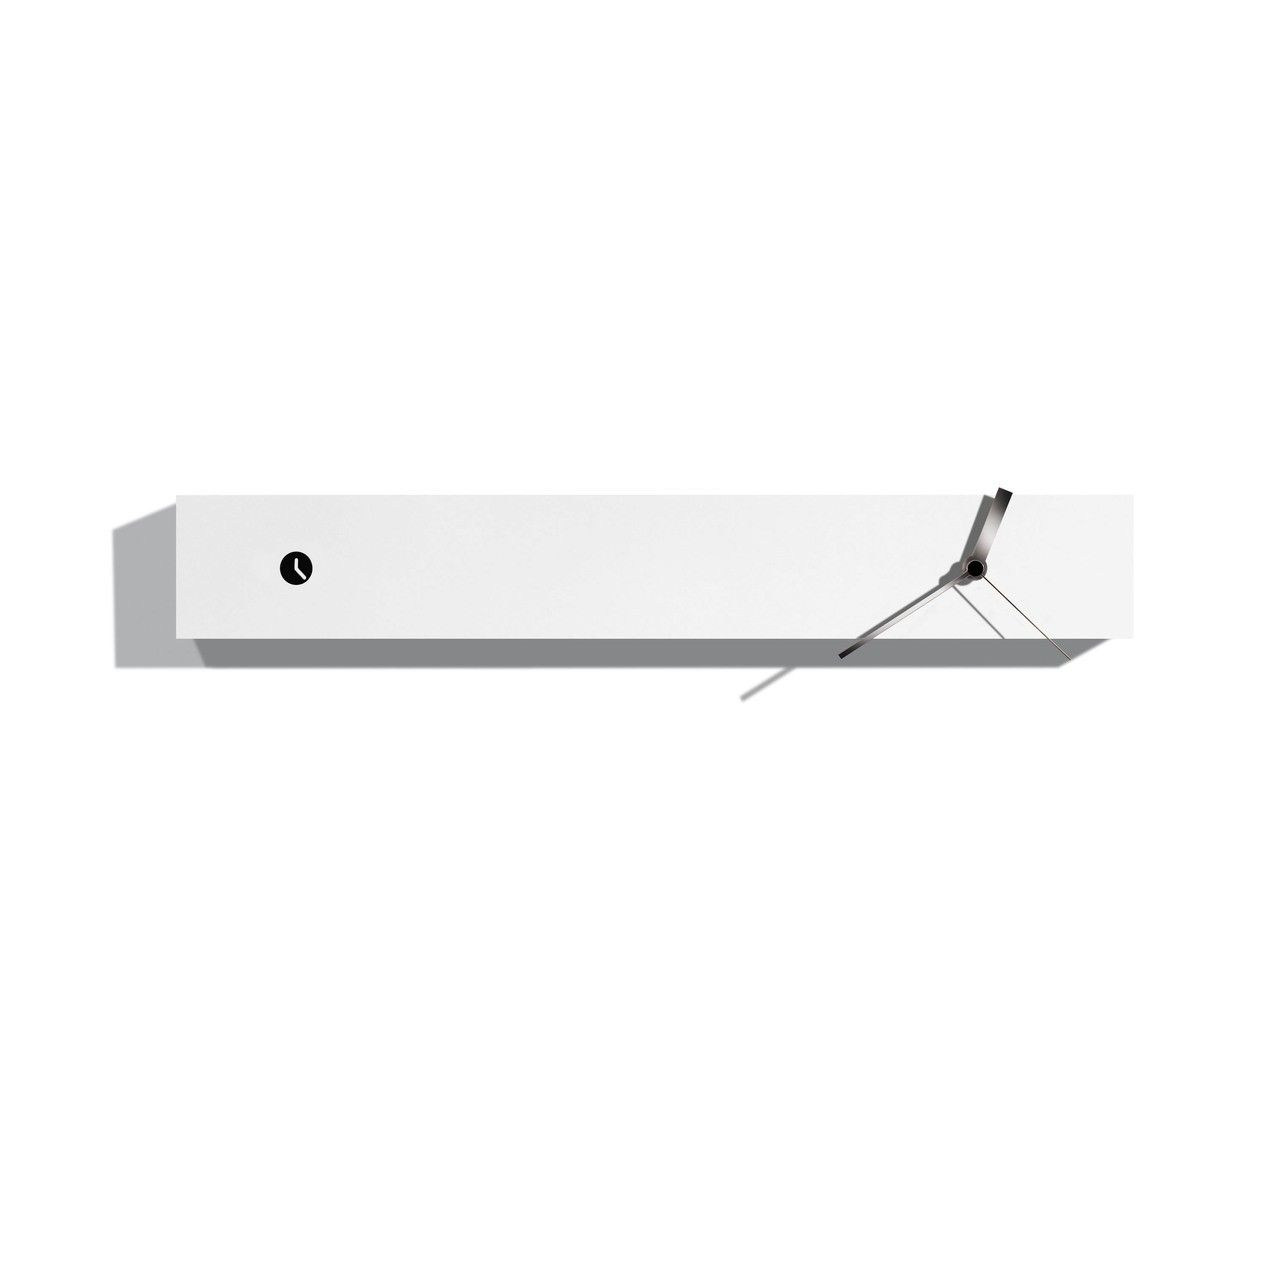 Stunning modern high end designer white horizontal analog wall stunning modern high end designer white horizontal analog wall clock with hands in steel amipublicfo Image collections